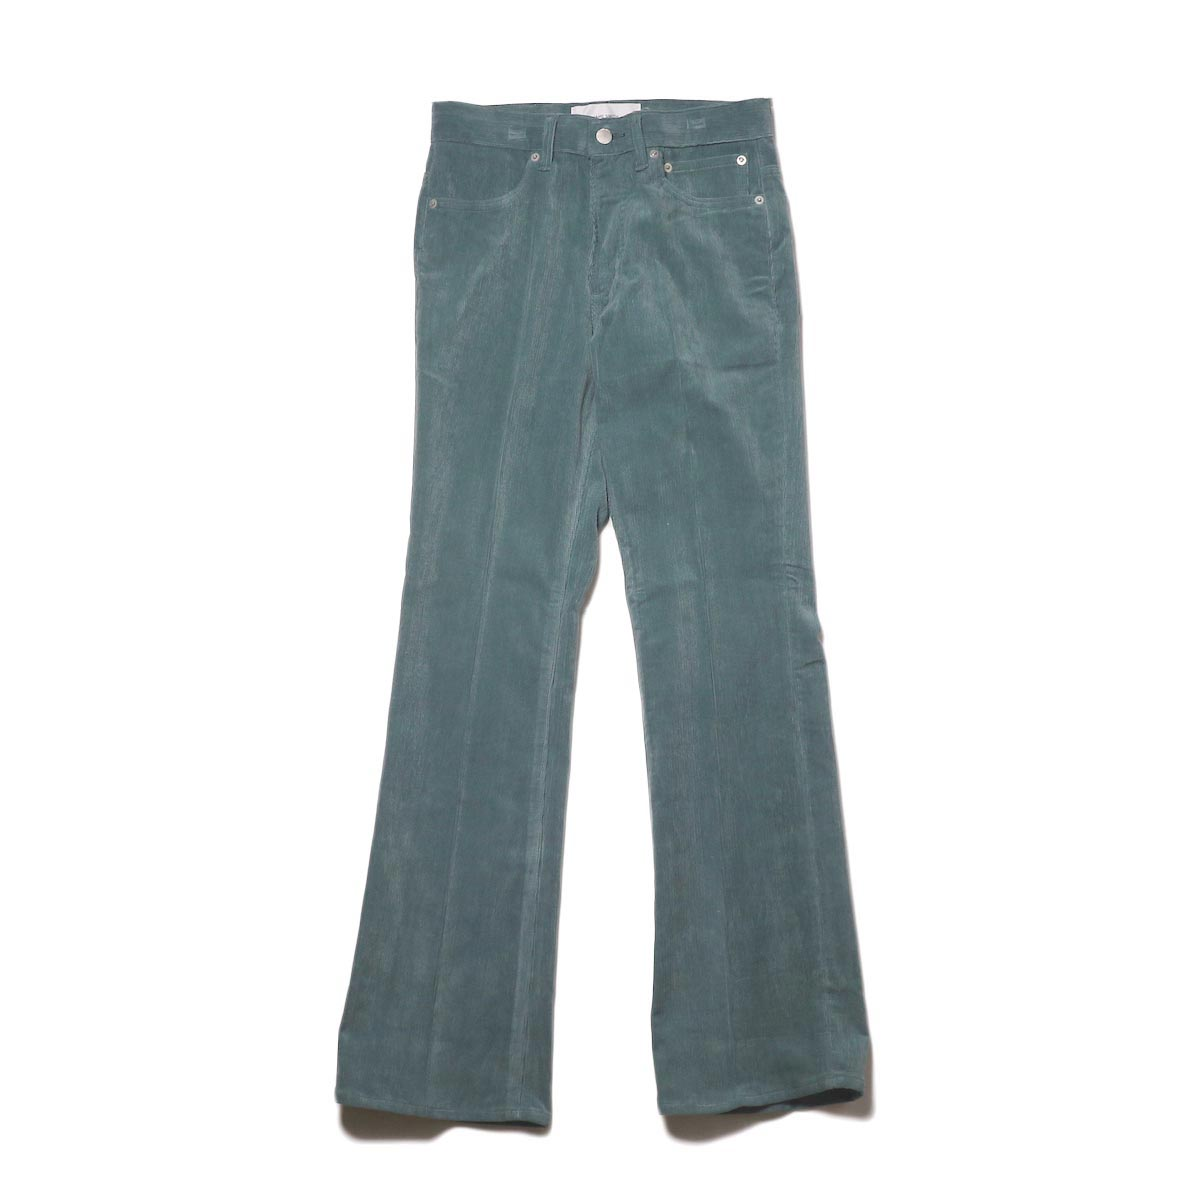 JANE SMITH / 5POCKET BOOTSCUT (jade green) 正面